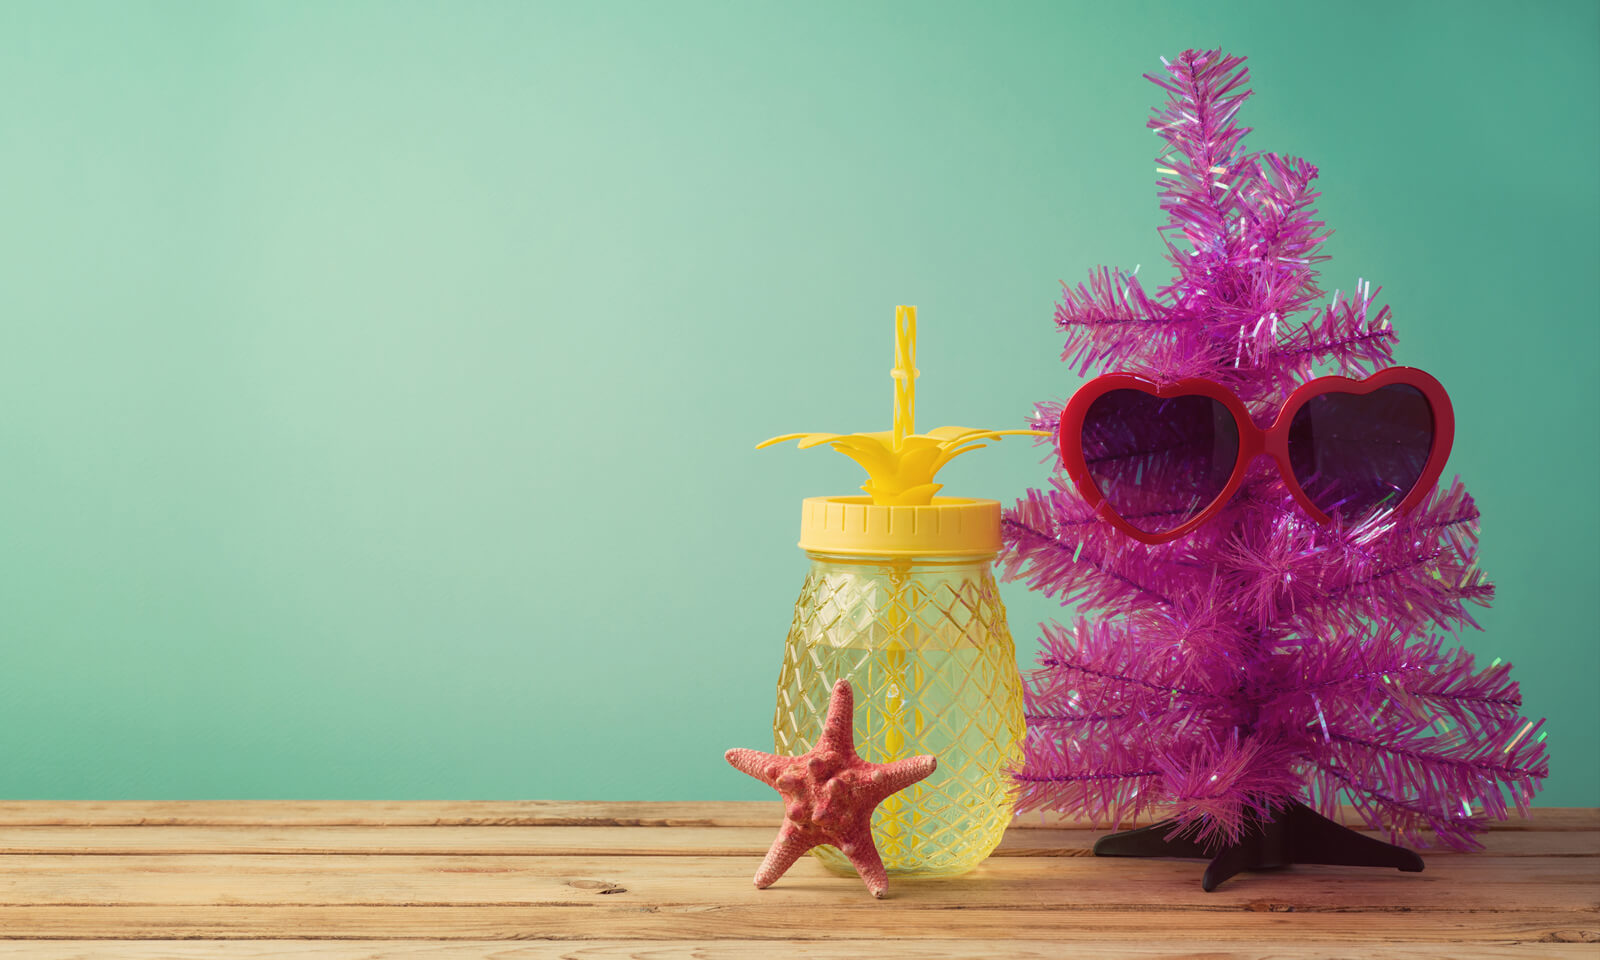 Celebrate Christmas in July by Preparing Your Store for the Holidays